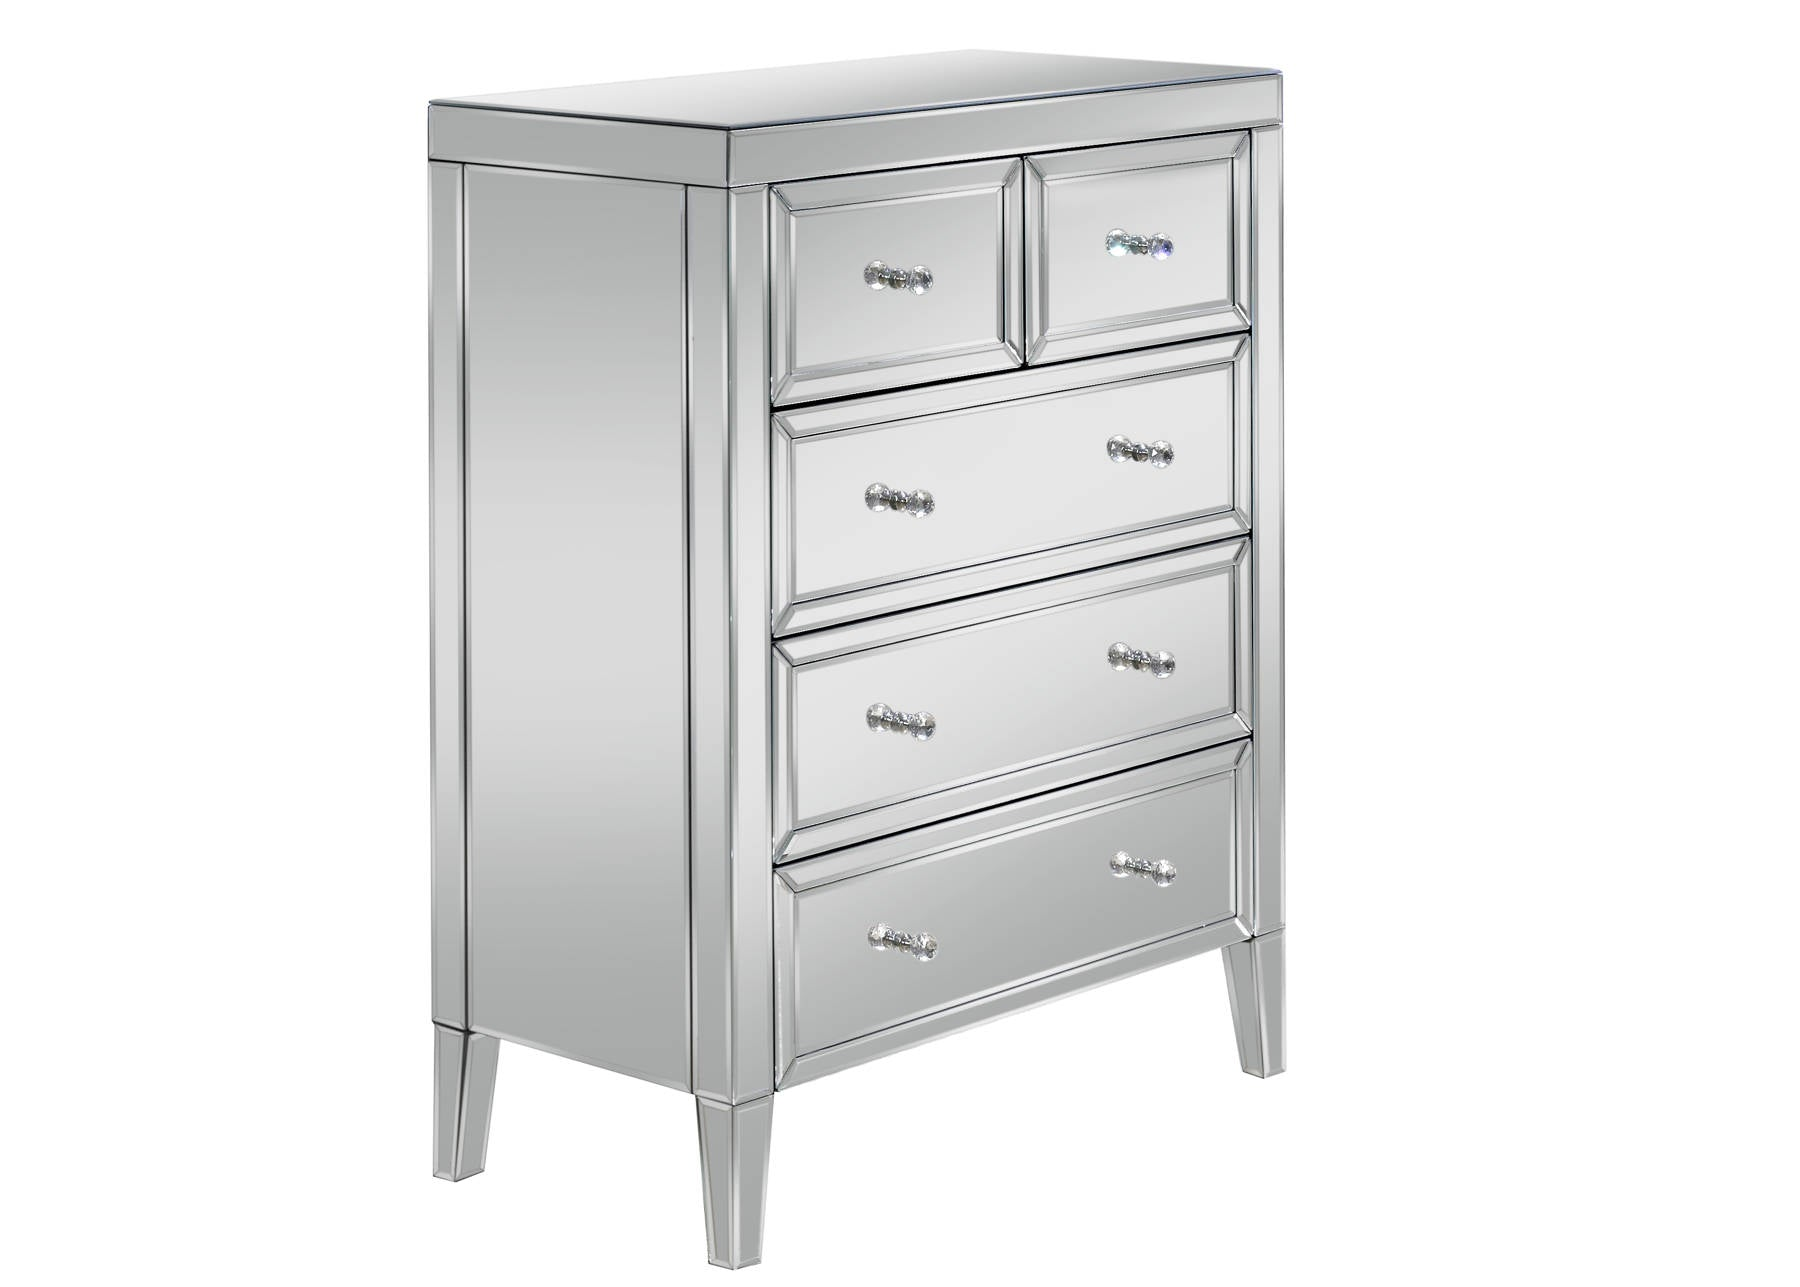 Turia 3 + 2 Drawer Chest - Ezzo